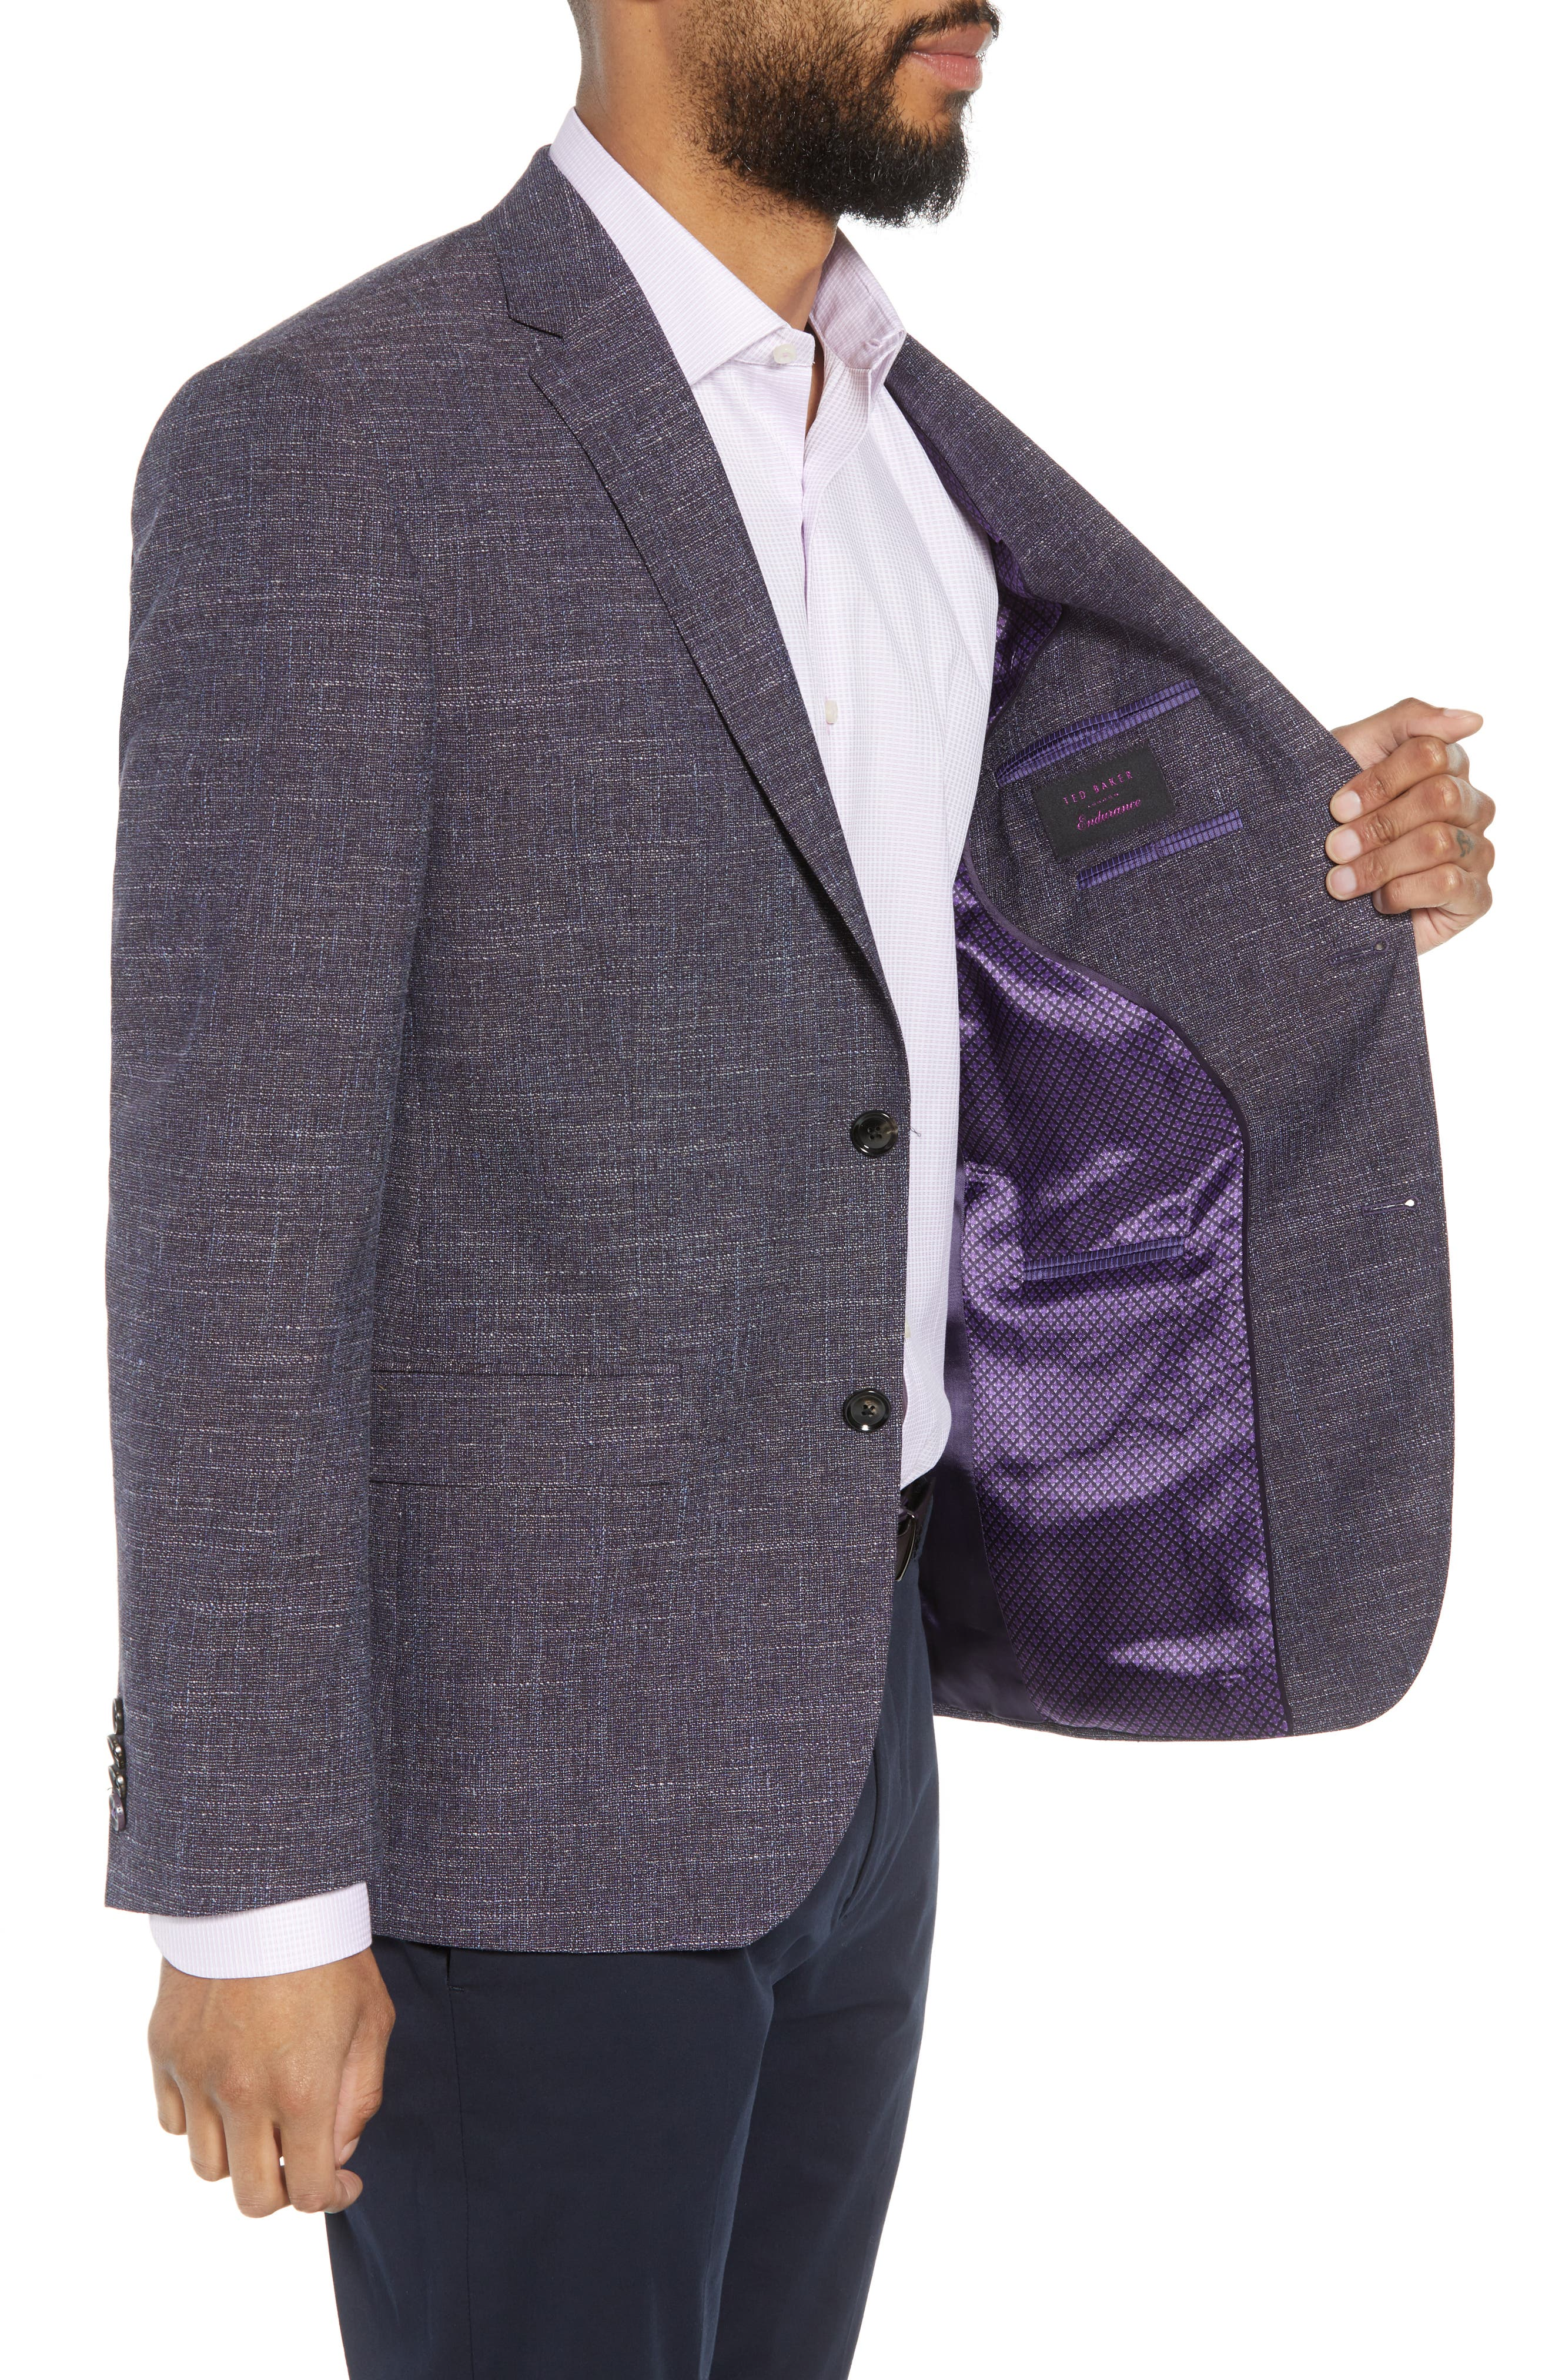 Jay Trim Fit Slubbed Wool, Cotton & Linen Sport Coat,                             Alternate thumbnail 3, color,                             930